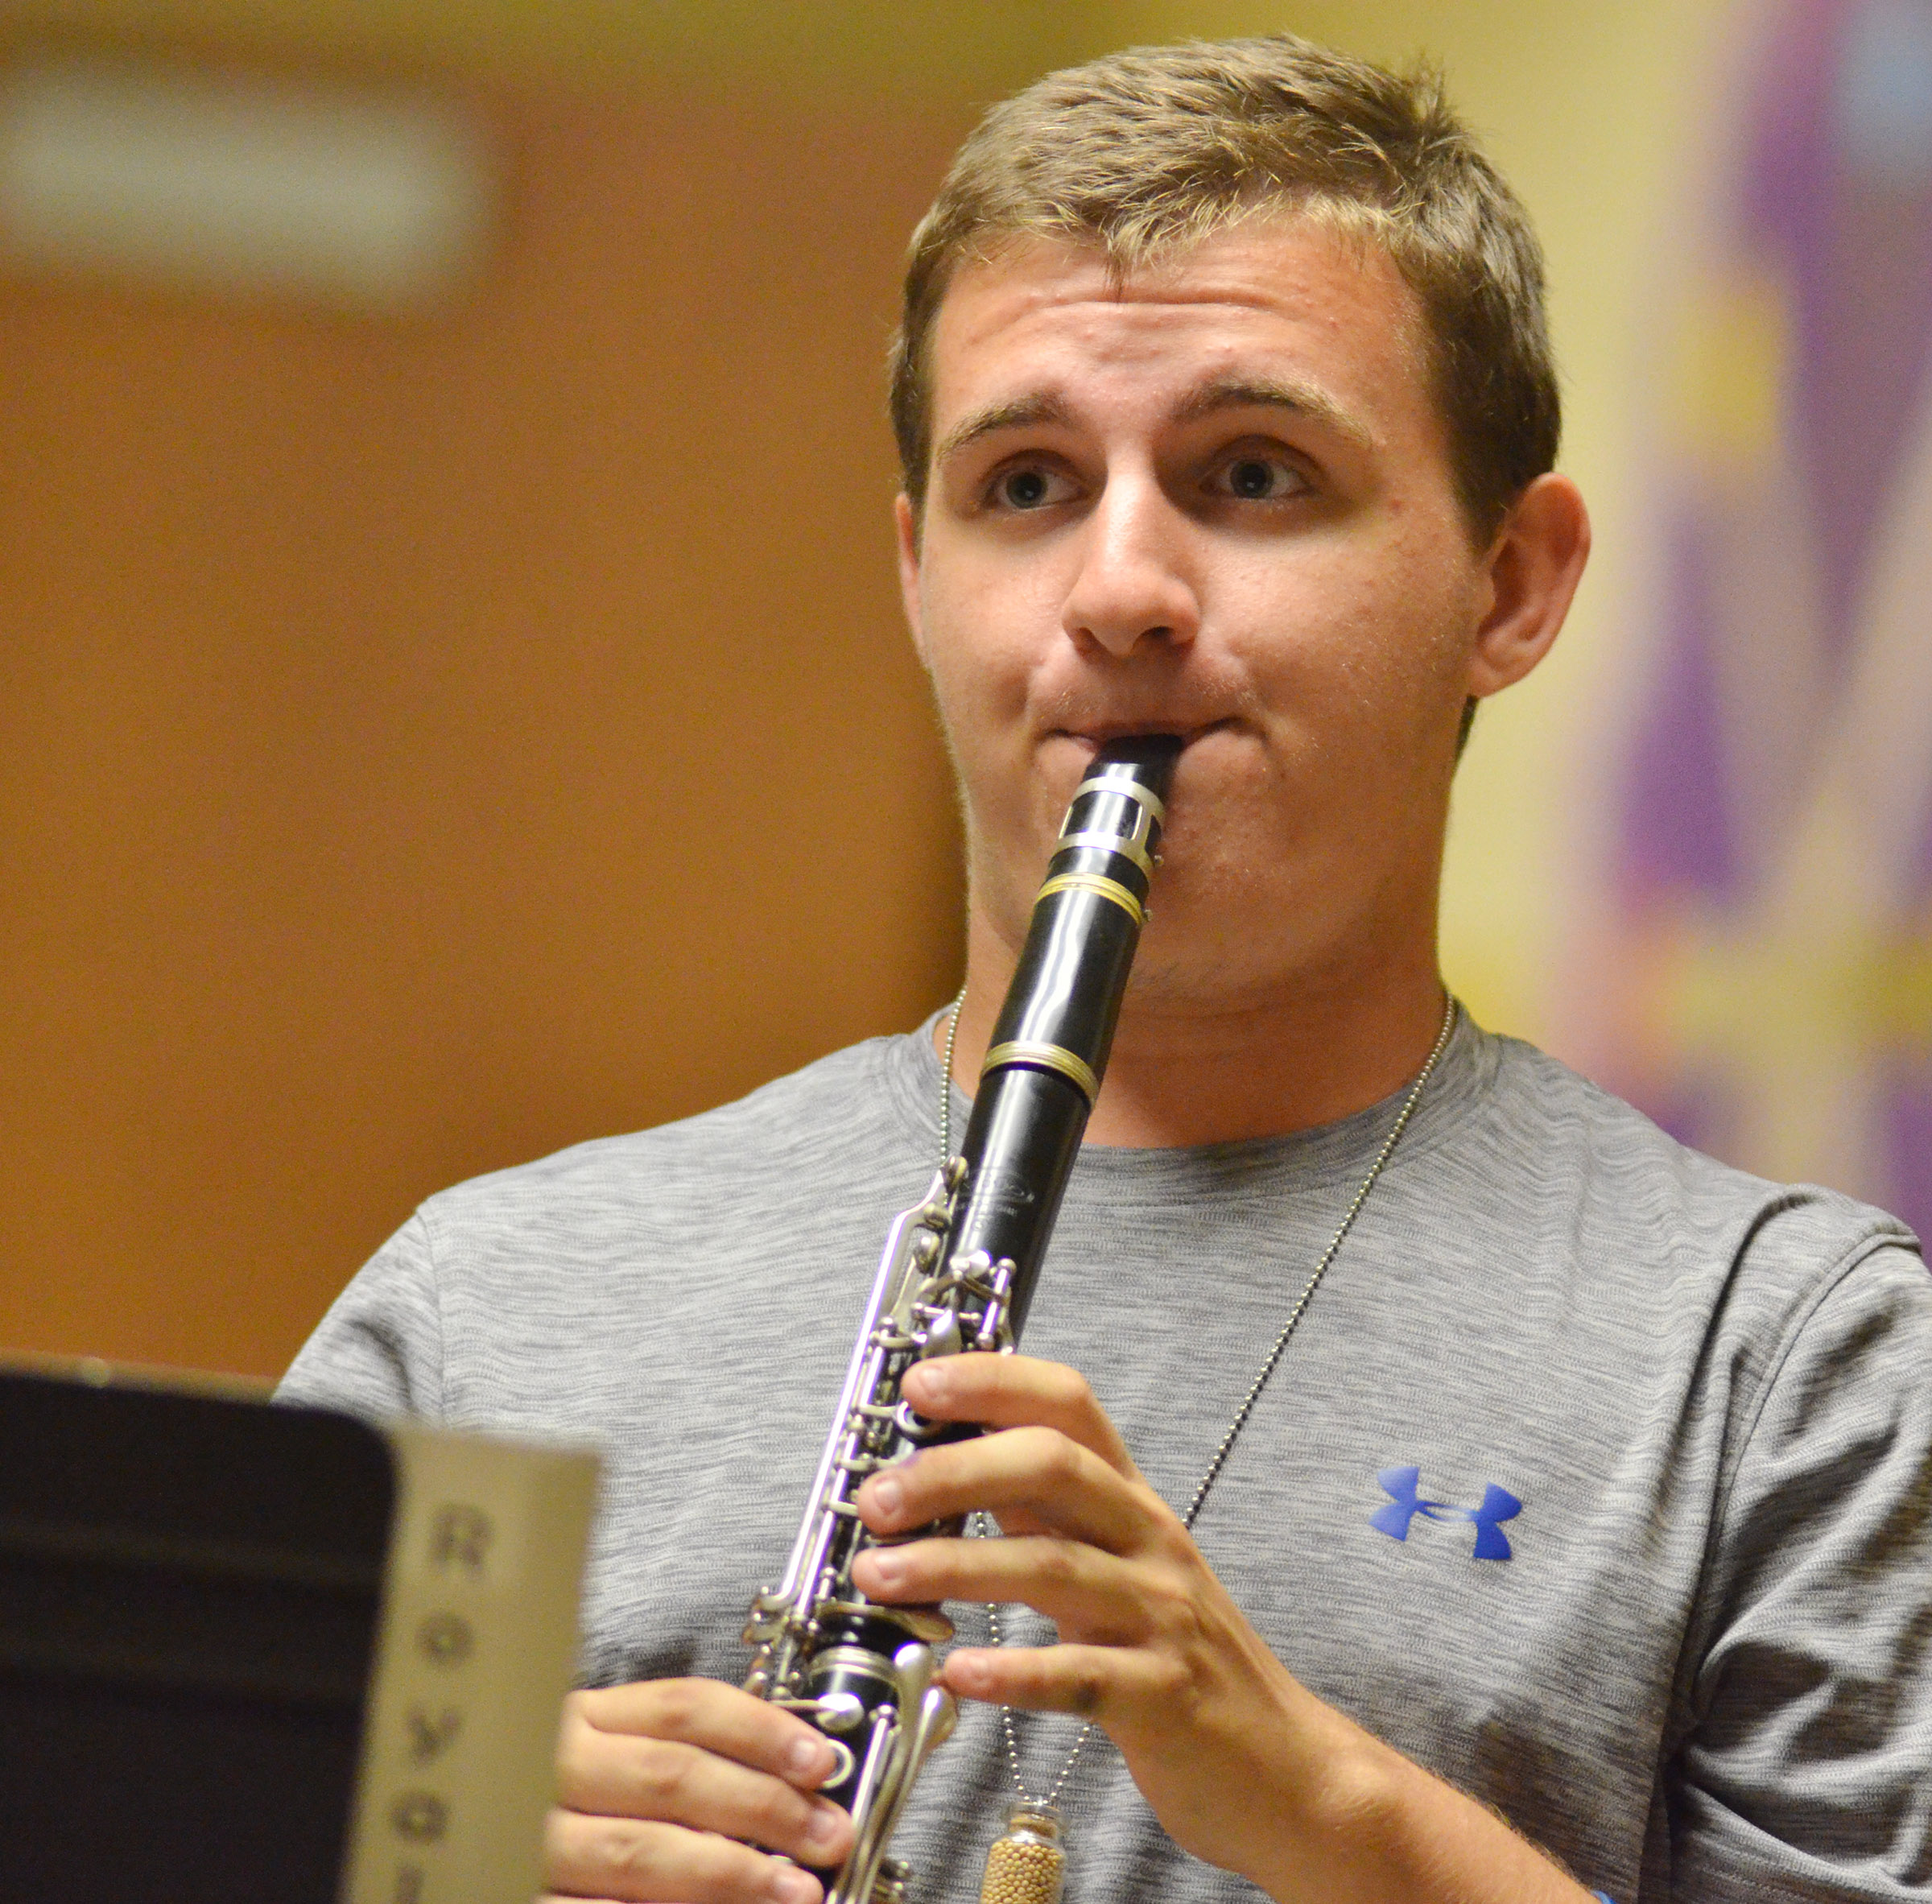 CHS senior Austin Fitzgerald plays clarinet.